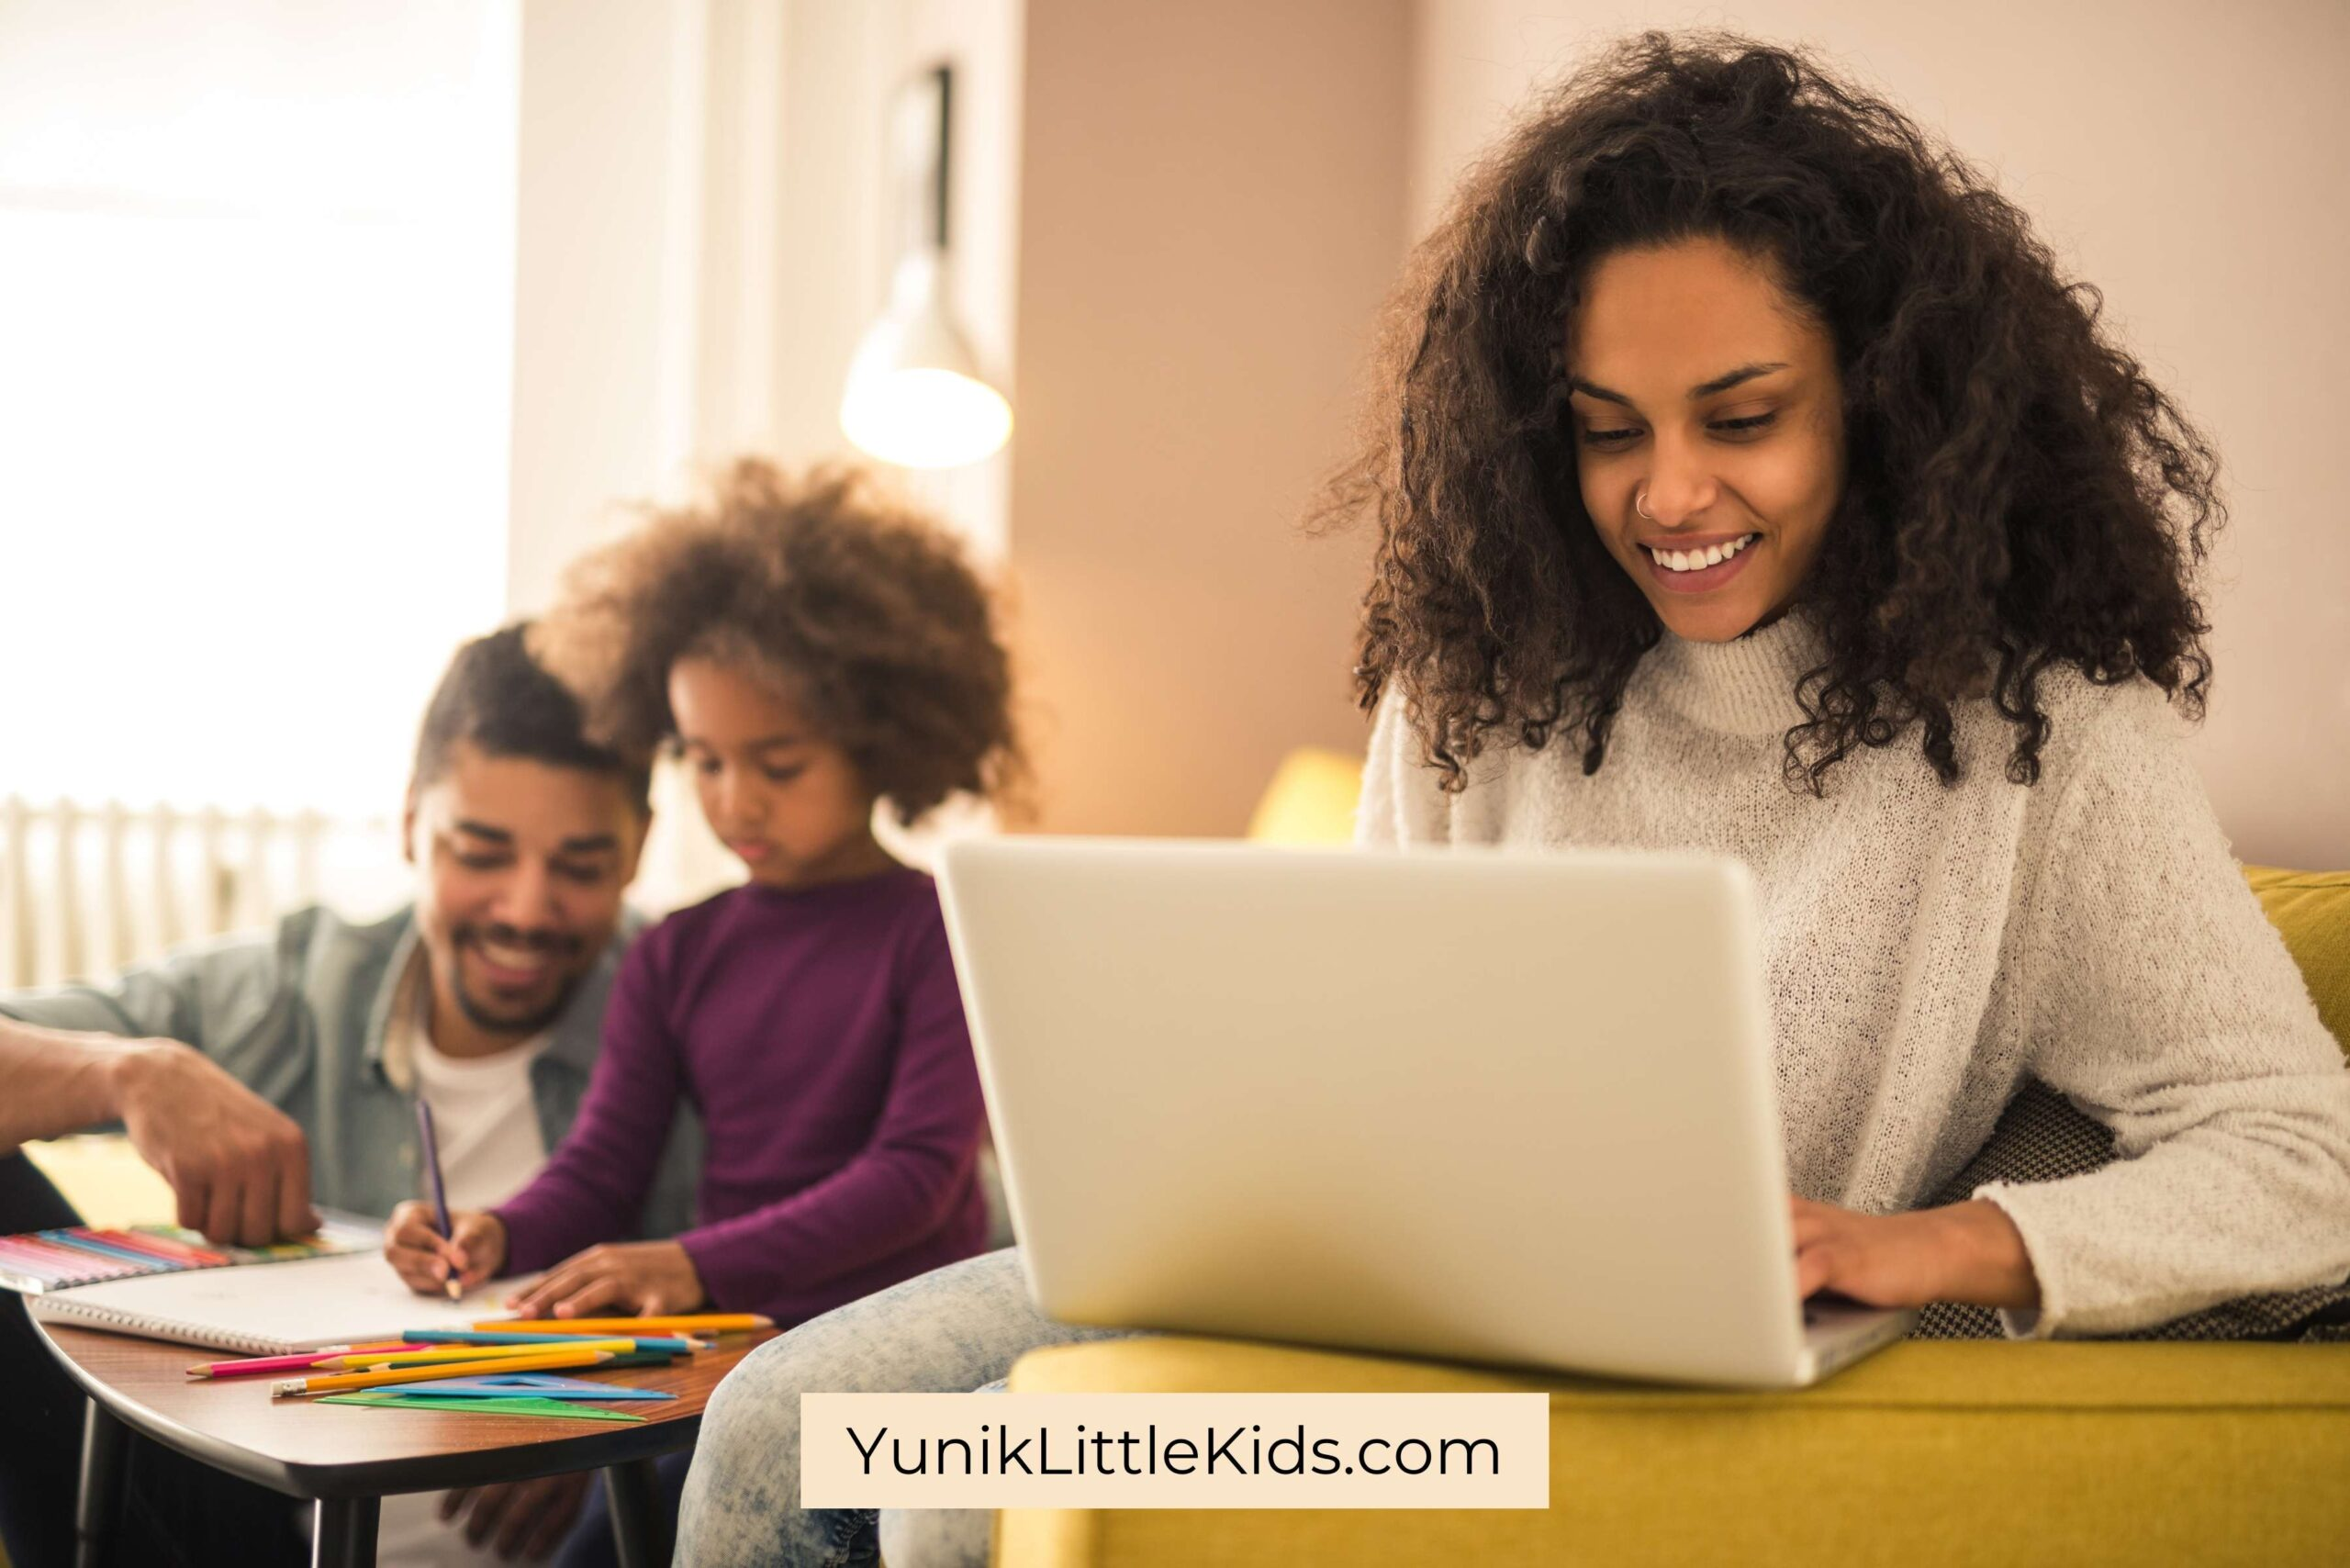 High paying freelance services to offer for moms